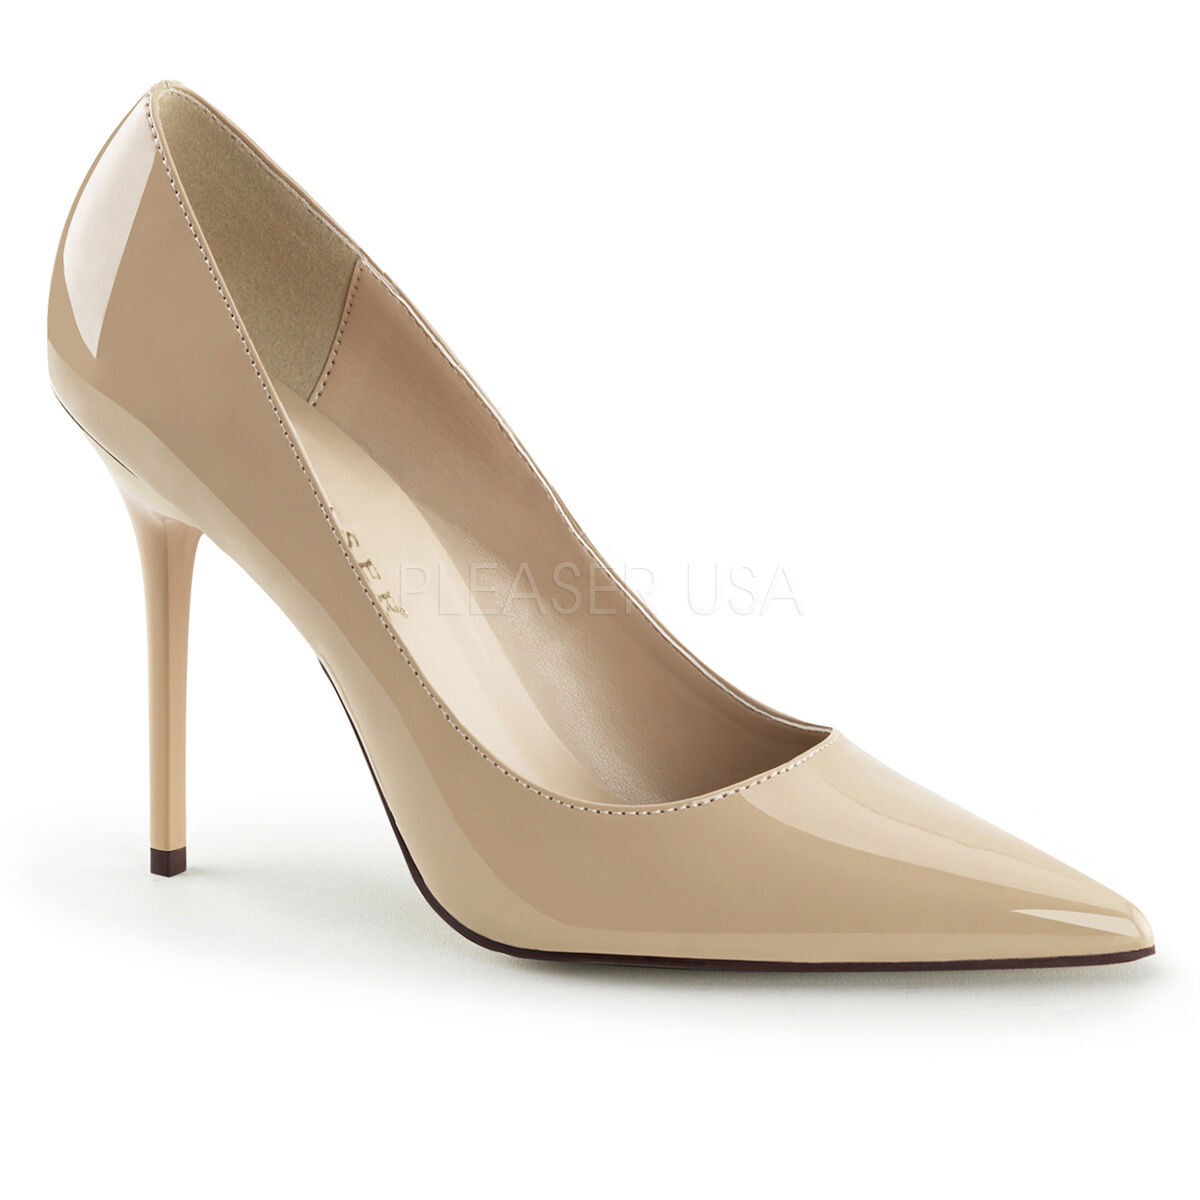 PLEASER CLASSIQUE-20 CREAM PATENT CLASSIC POINTED TOE COURT SHOES